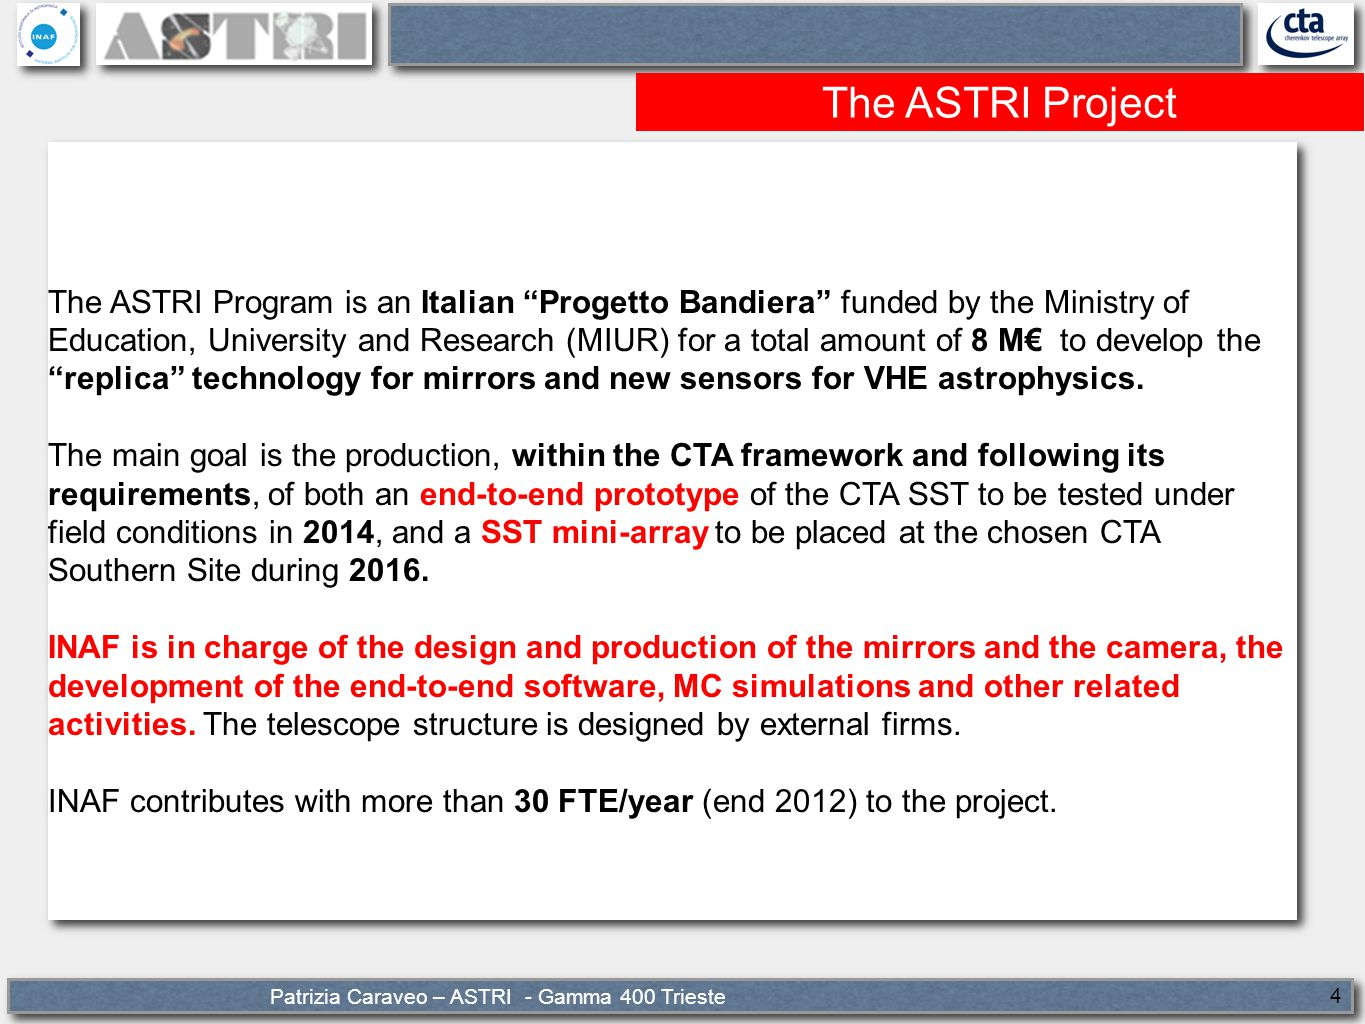 Patrizia Caraveo – ASTRI - Gamma 400 Trieste 15 Major Milestones ASTRI SST-2M mini-array CTA Southern site should be decided within 2013 2014 - 2015 ➔ ASTRI prototype re-assessment study 2015 - 2016 ➔ Extension of the ASTRI mini-array [phase 2], and mini-array deployment phase.